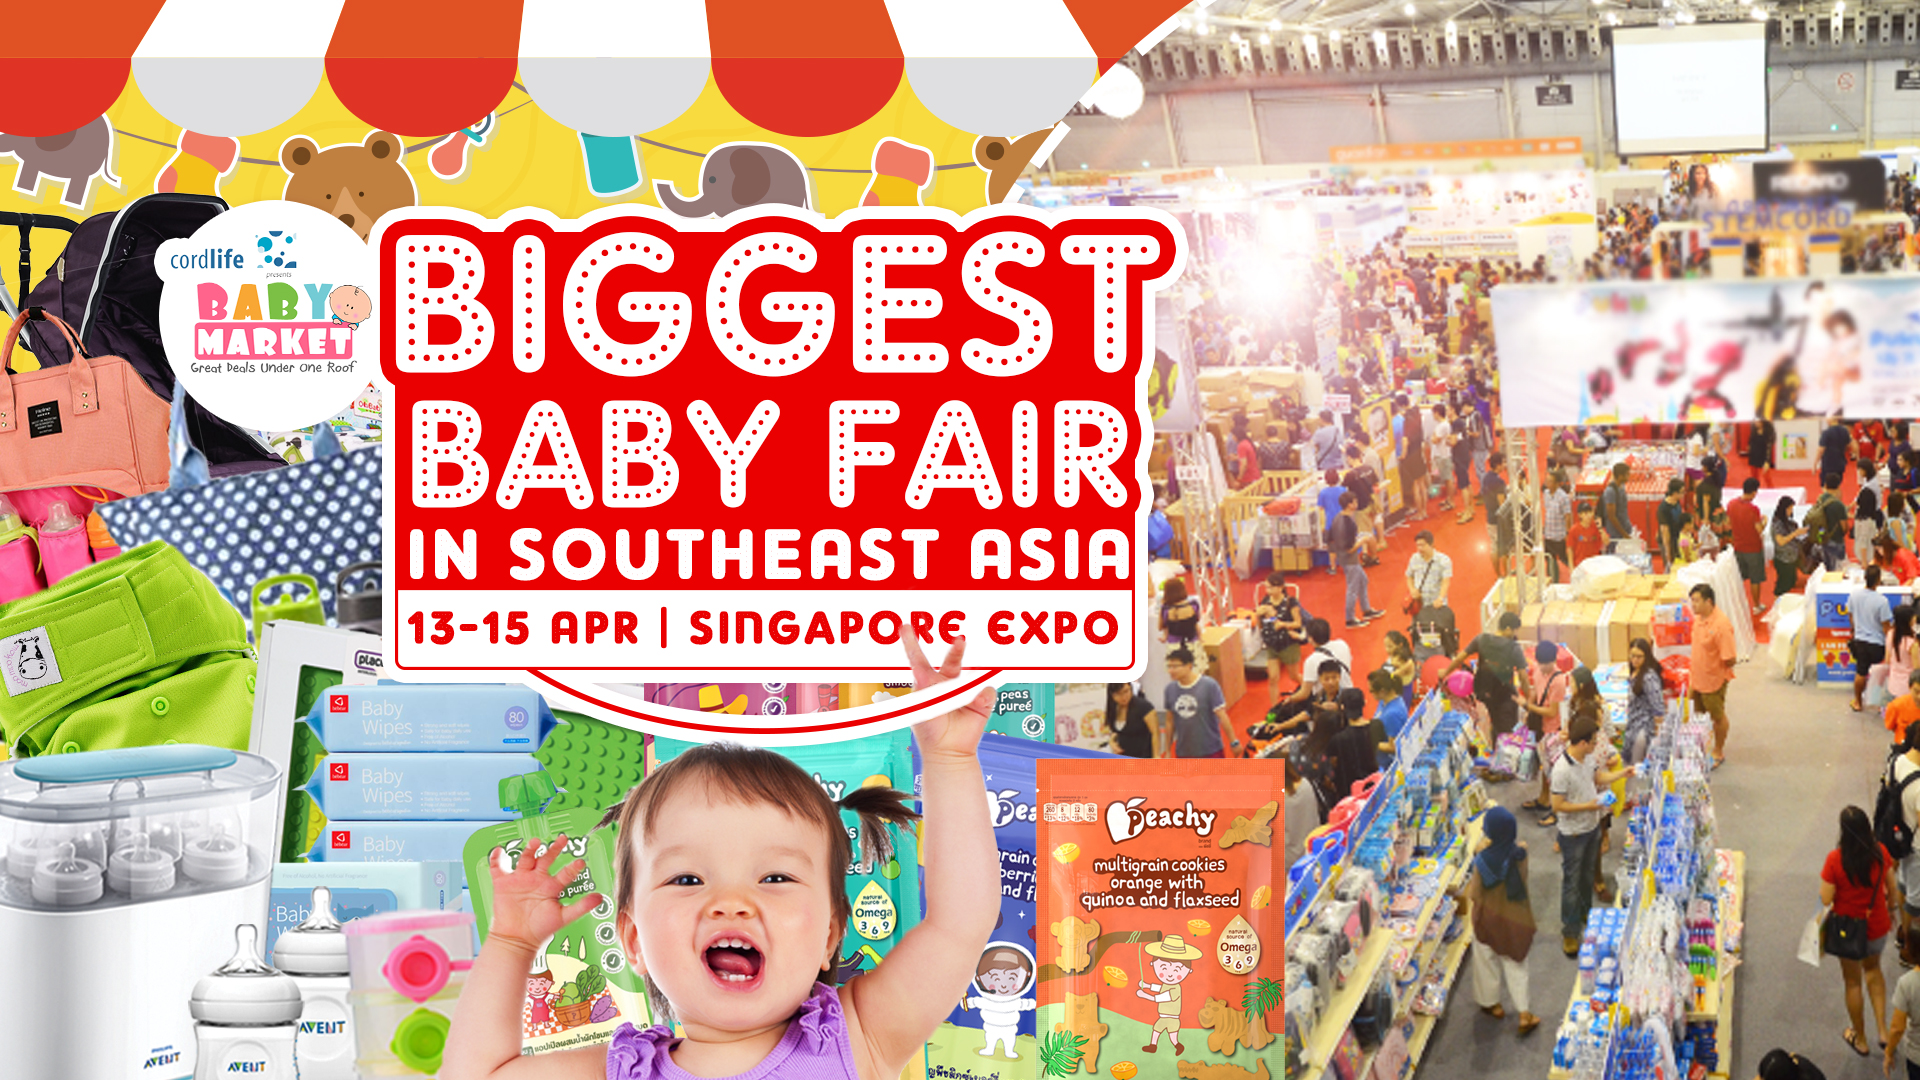 We will be participating in the BIGGEST baby fair! It runs through 13th - 15th April at the Singapore EXPO.